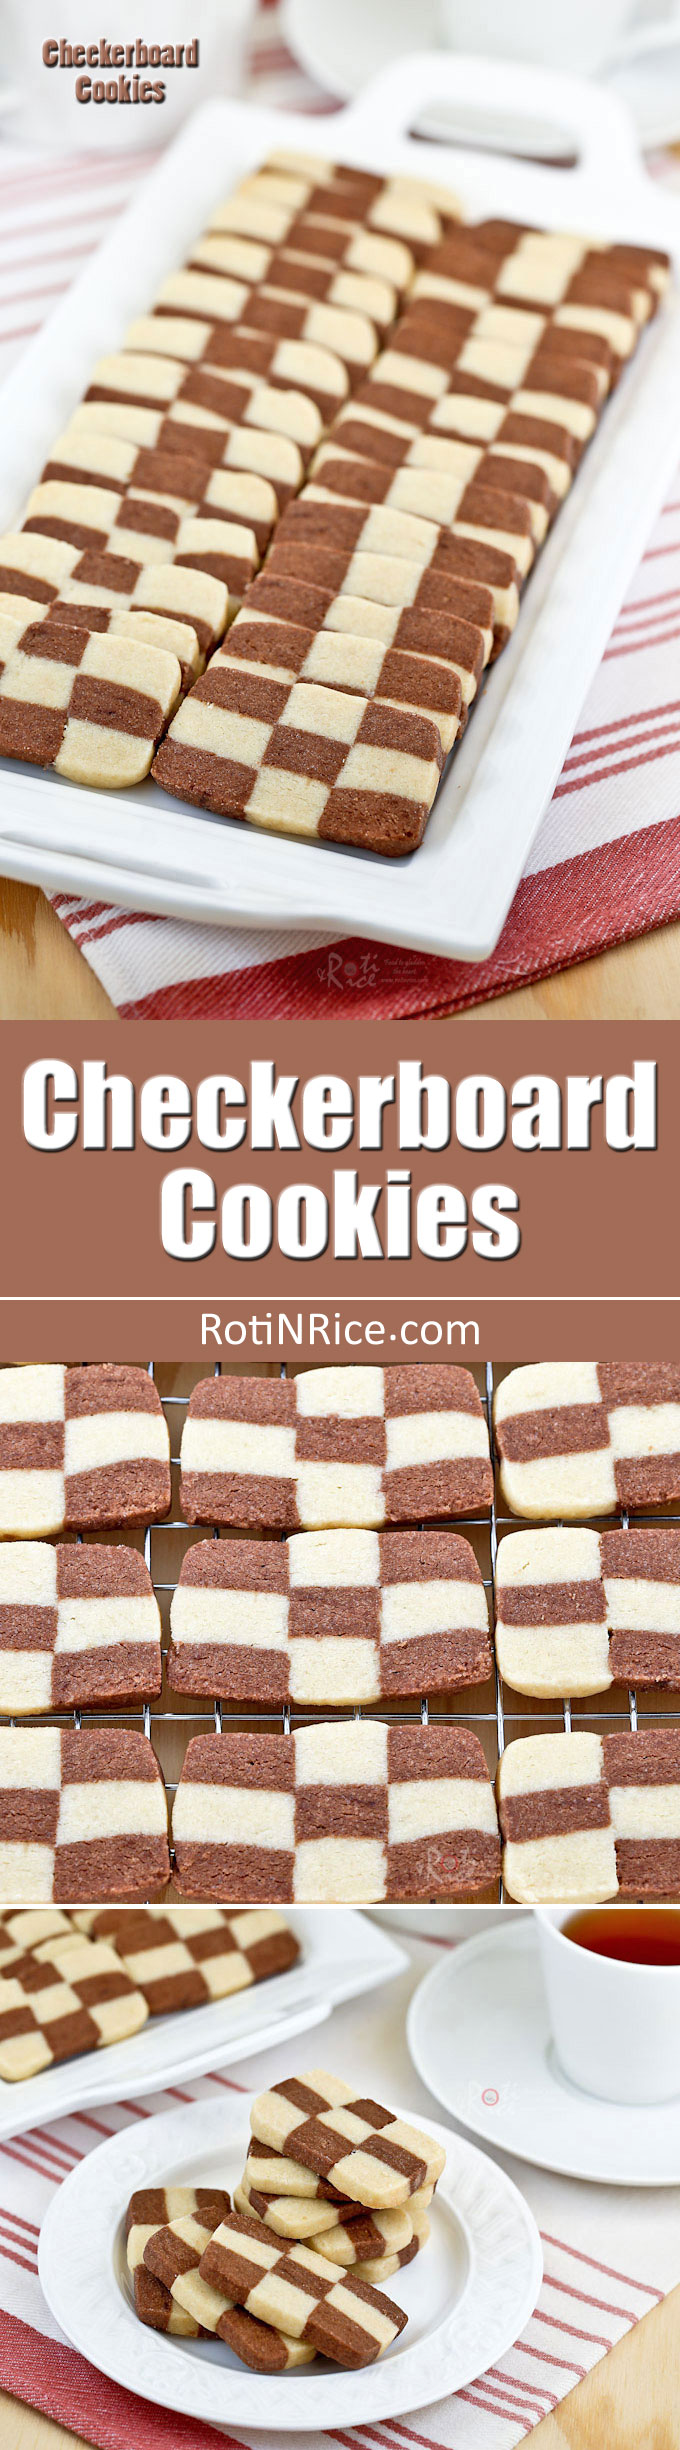 These egg free vanilla and chocolate flavored Checkerboard Cookies are light and buttery. They are perfect for tea time or special occasions. | RotiNRice.com